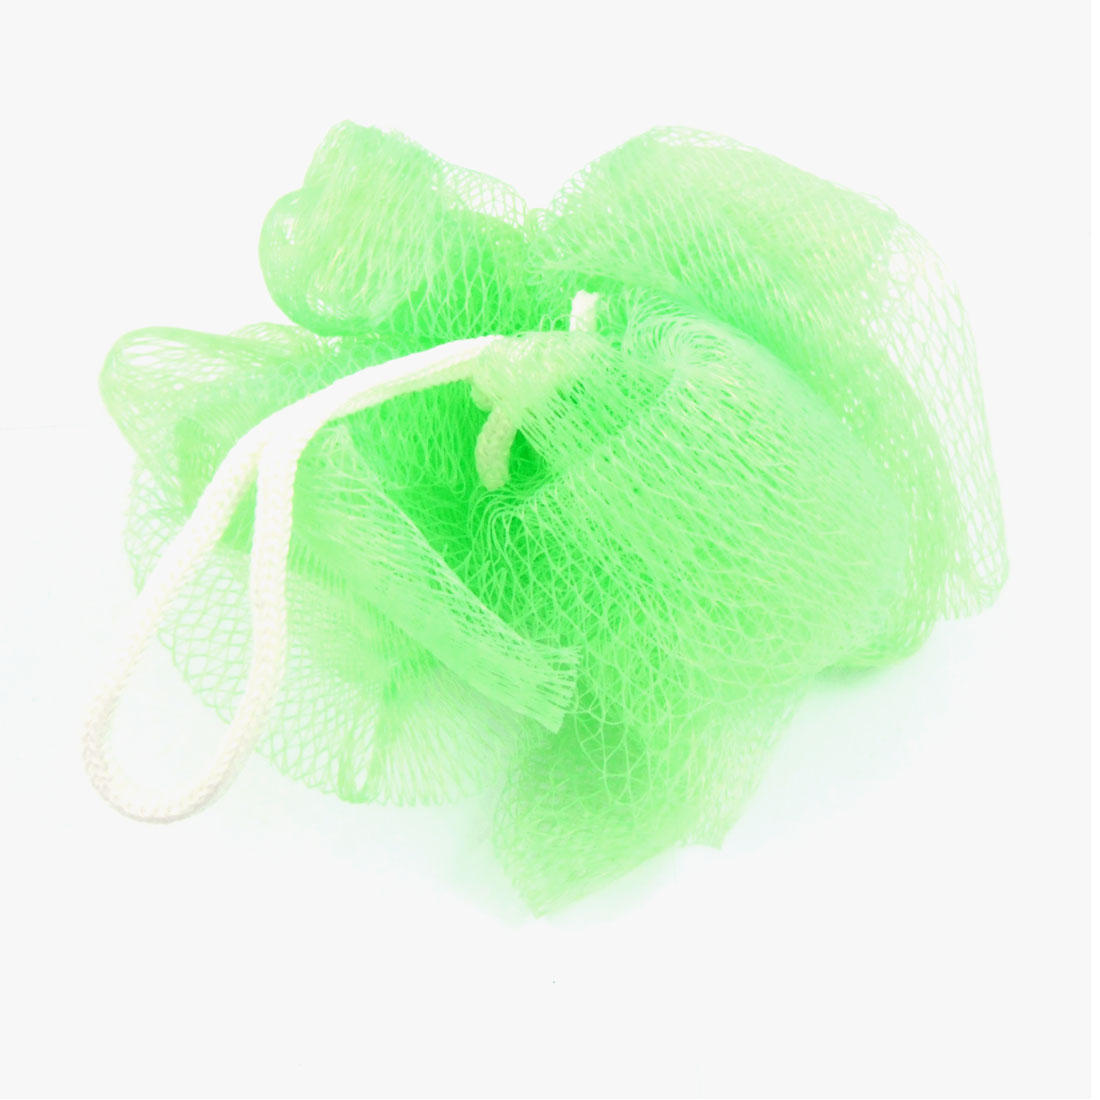 2 Pcs Bath Shower Body Foam Scrubber Apple Green Mesh Net Ball